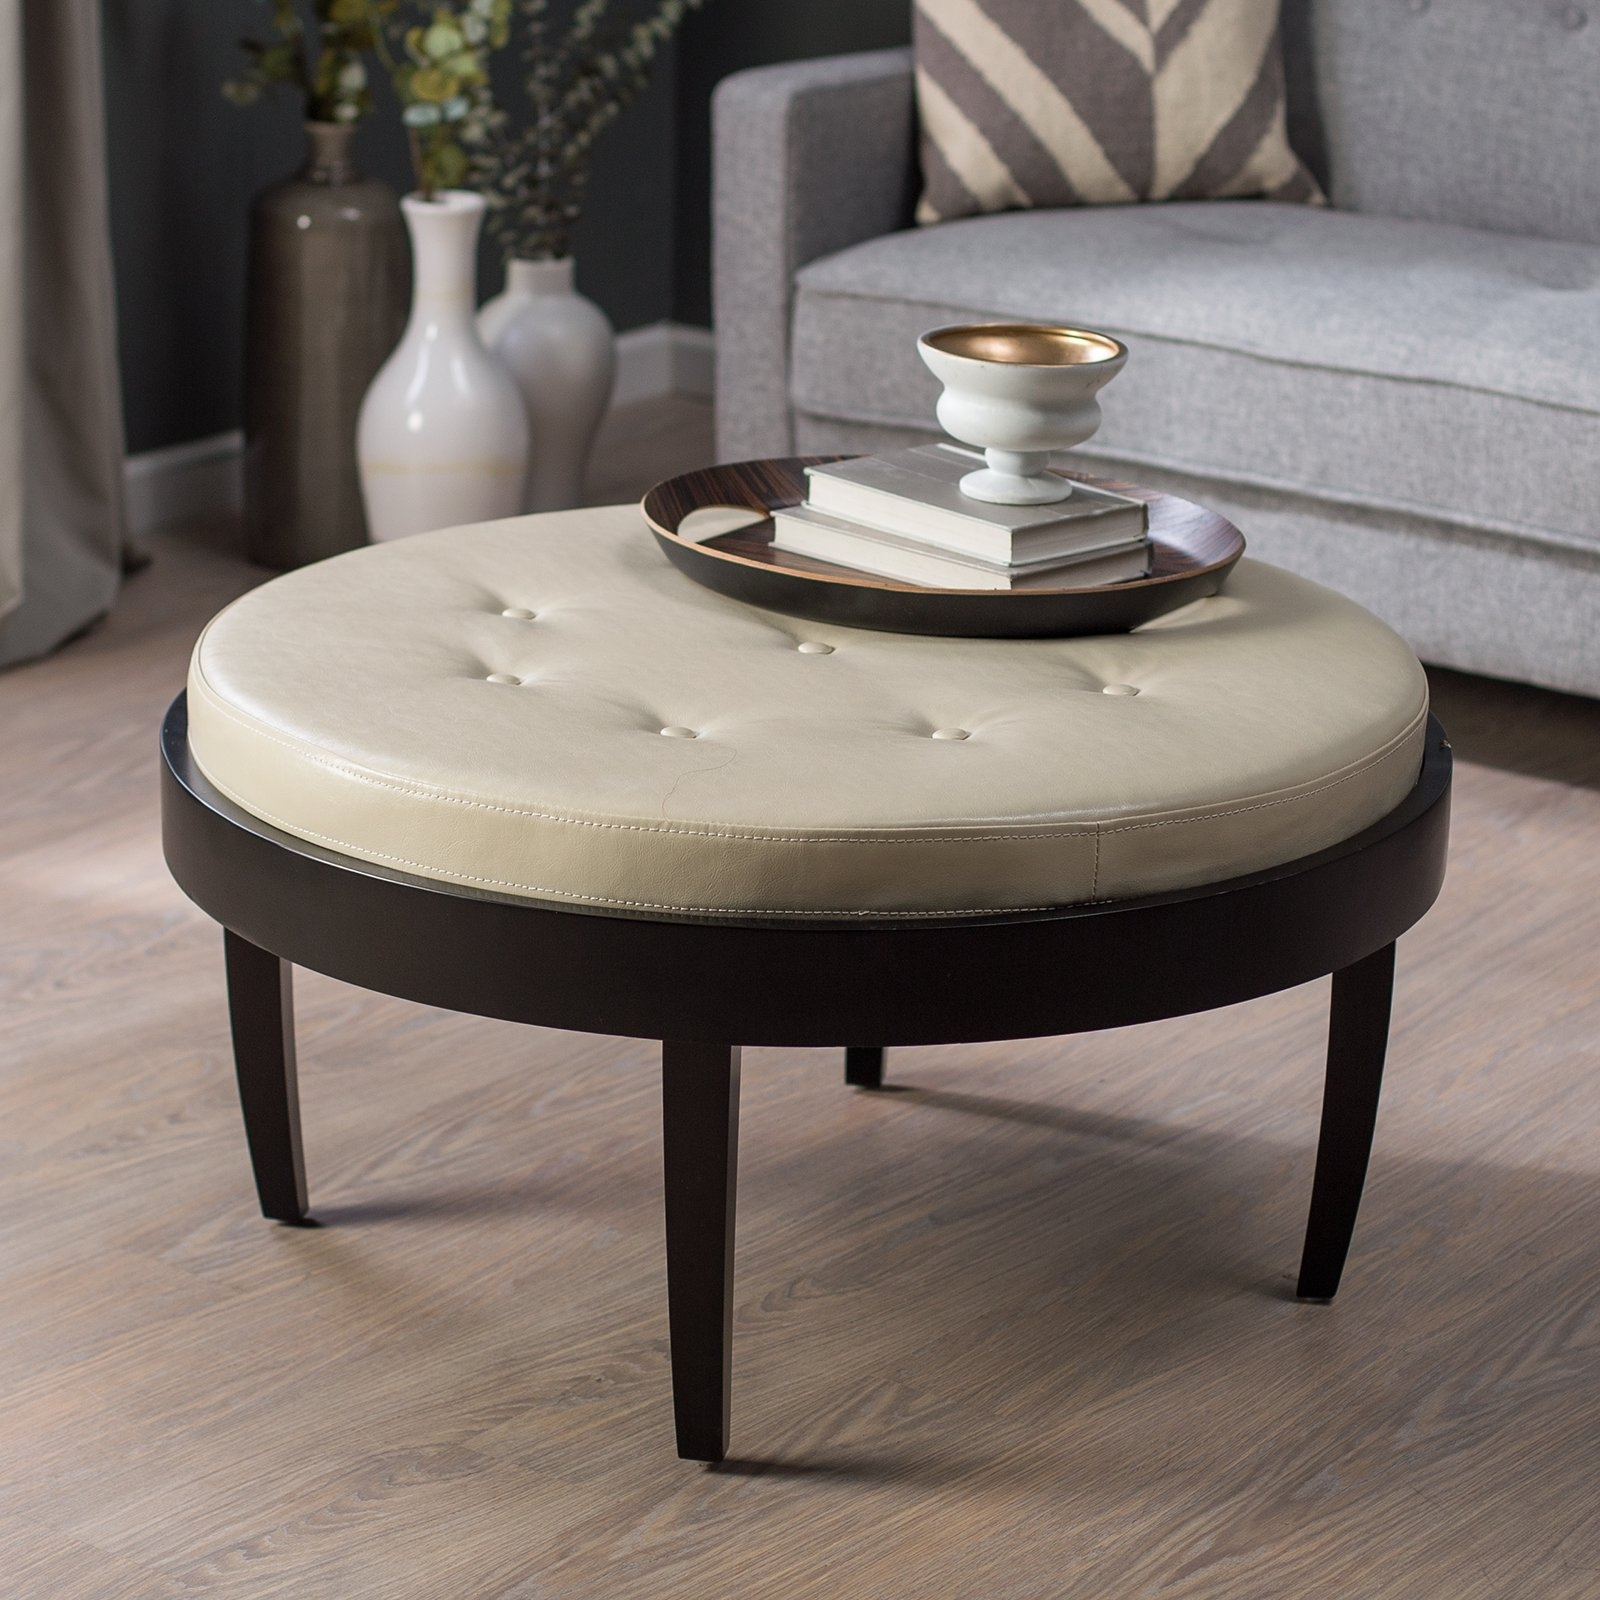 Citation Coffee Table Ottoman With Removable Cushion - Walmart for Round Button Tufted Coffee Tables (Image 6 of 30)